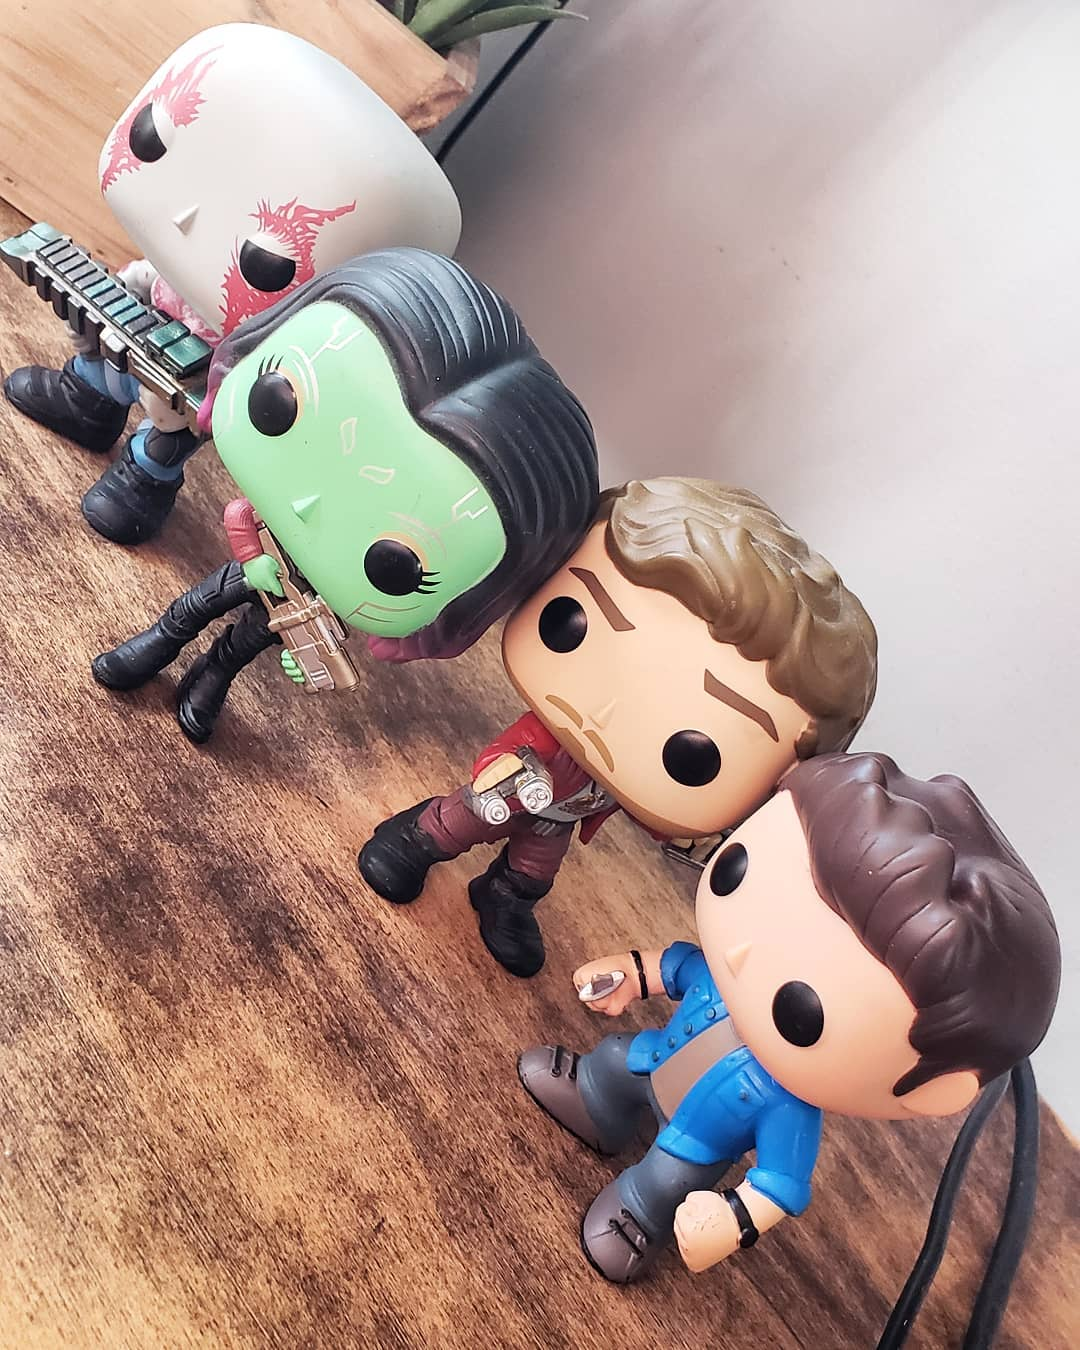 [Instagram]I welcomed Dean Winchester to…